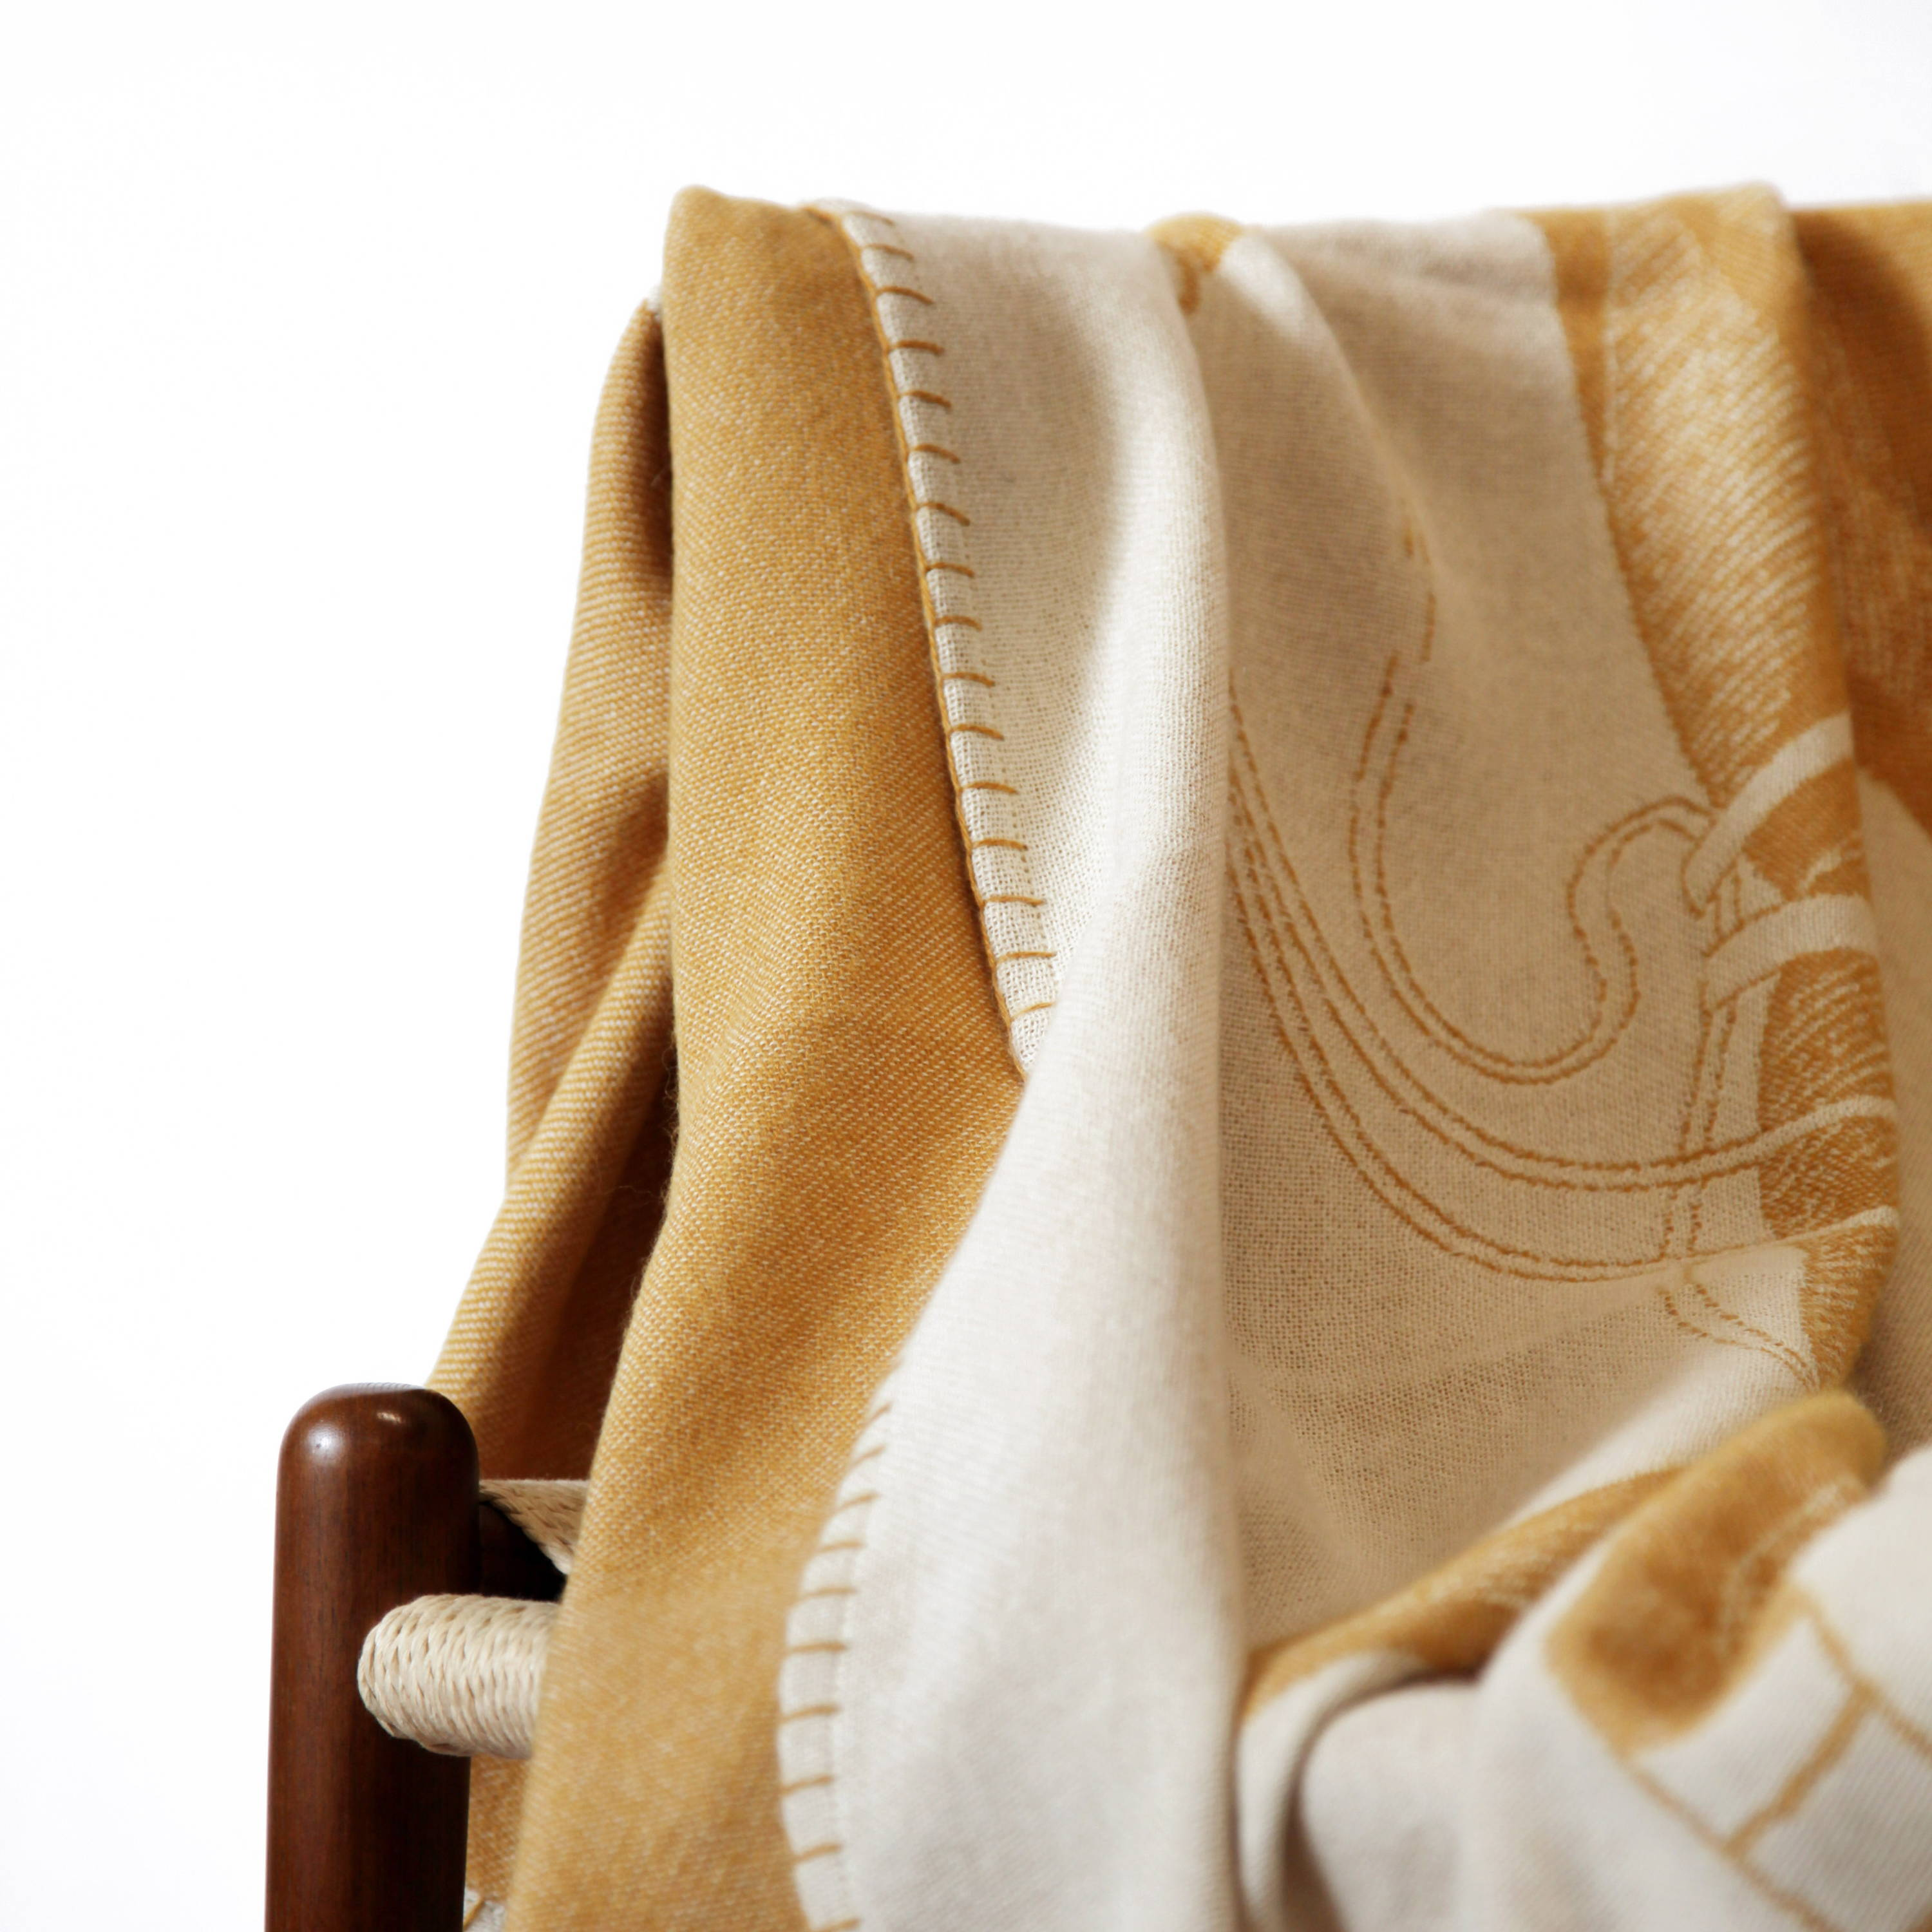 Equestrian-inspired alpaca polo pony throw with hand-stitched edges - Stick & Ball